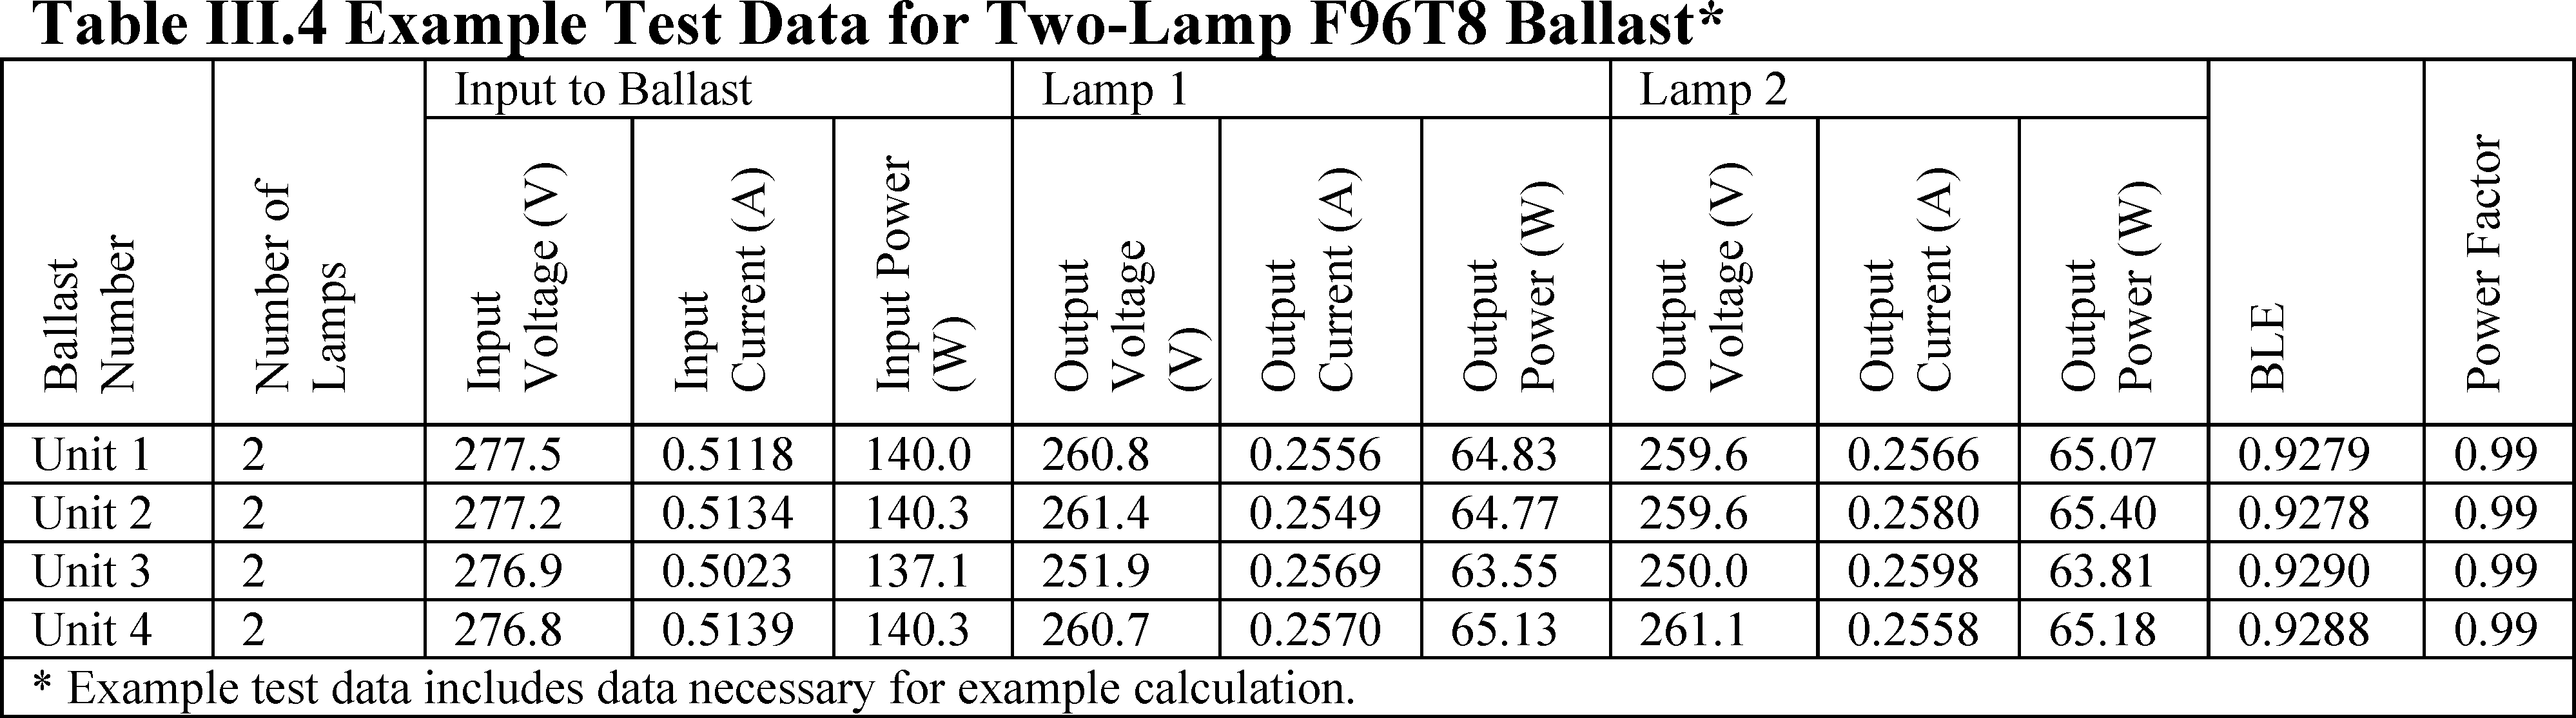 the example ballast is a universal voltage high frequency ballast designed to operate 8foot slimline lamps and is intended for use in